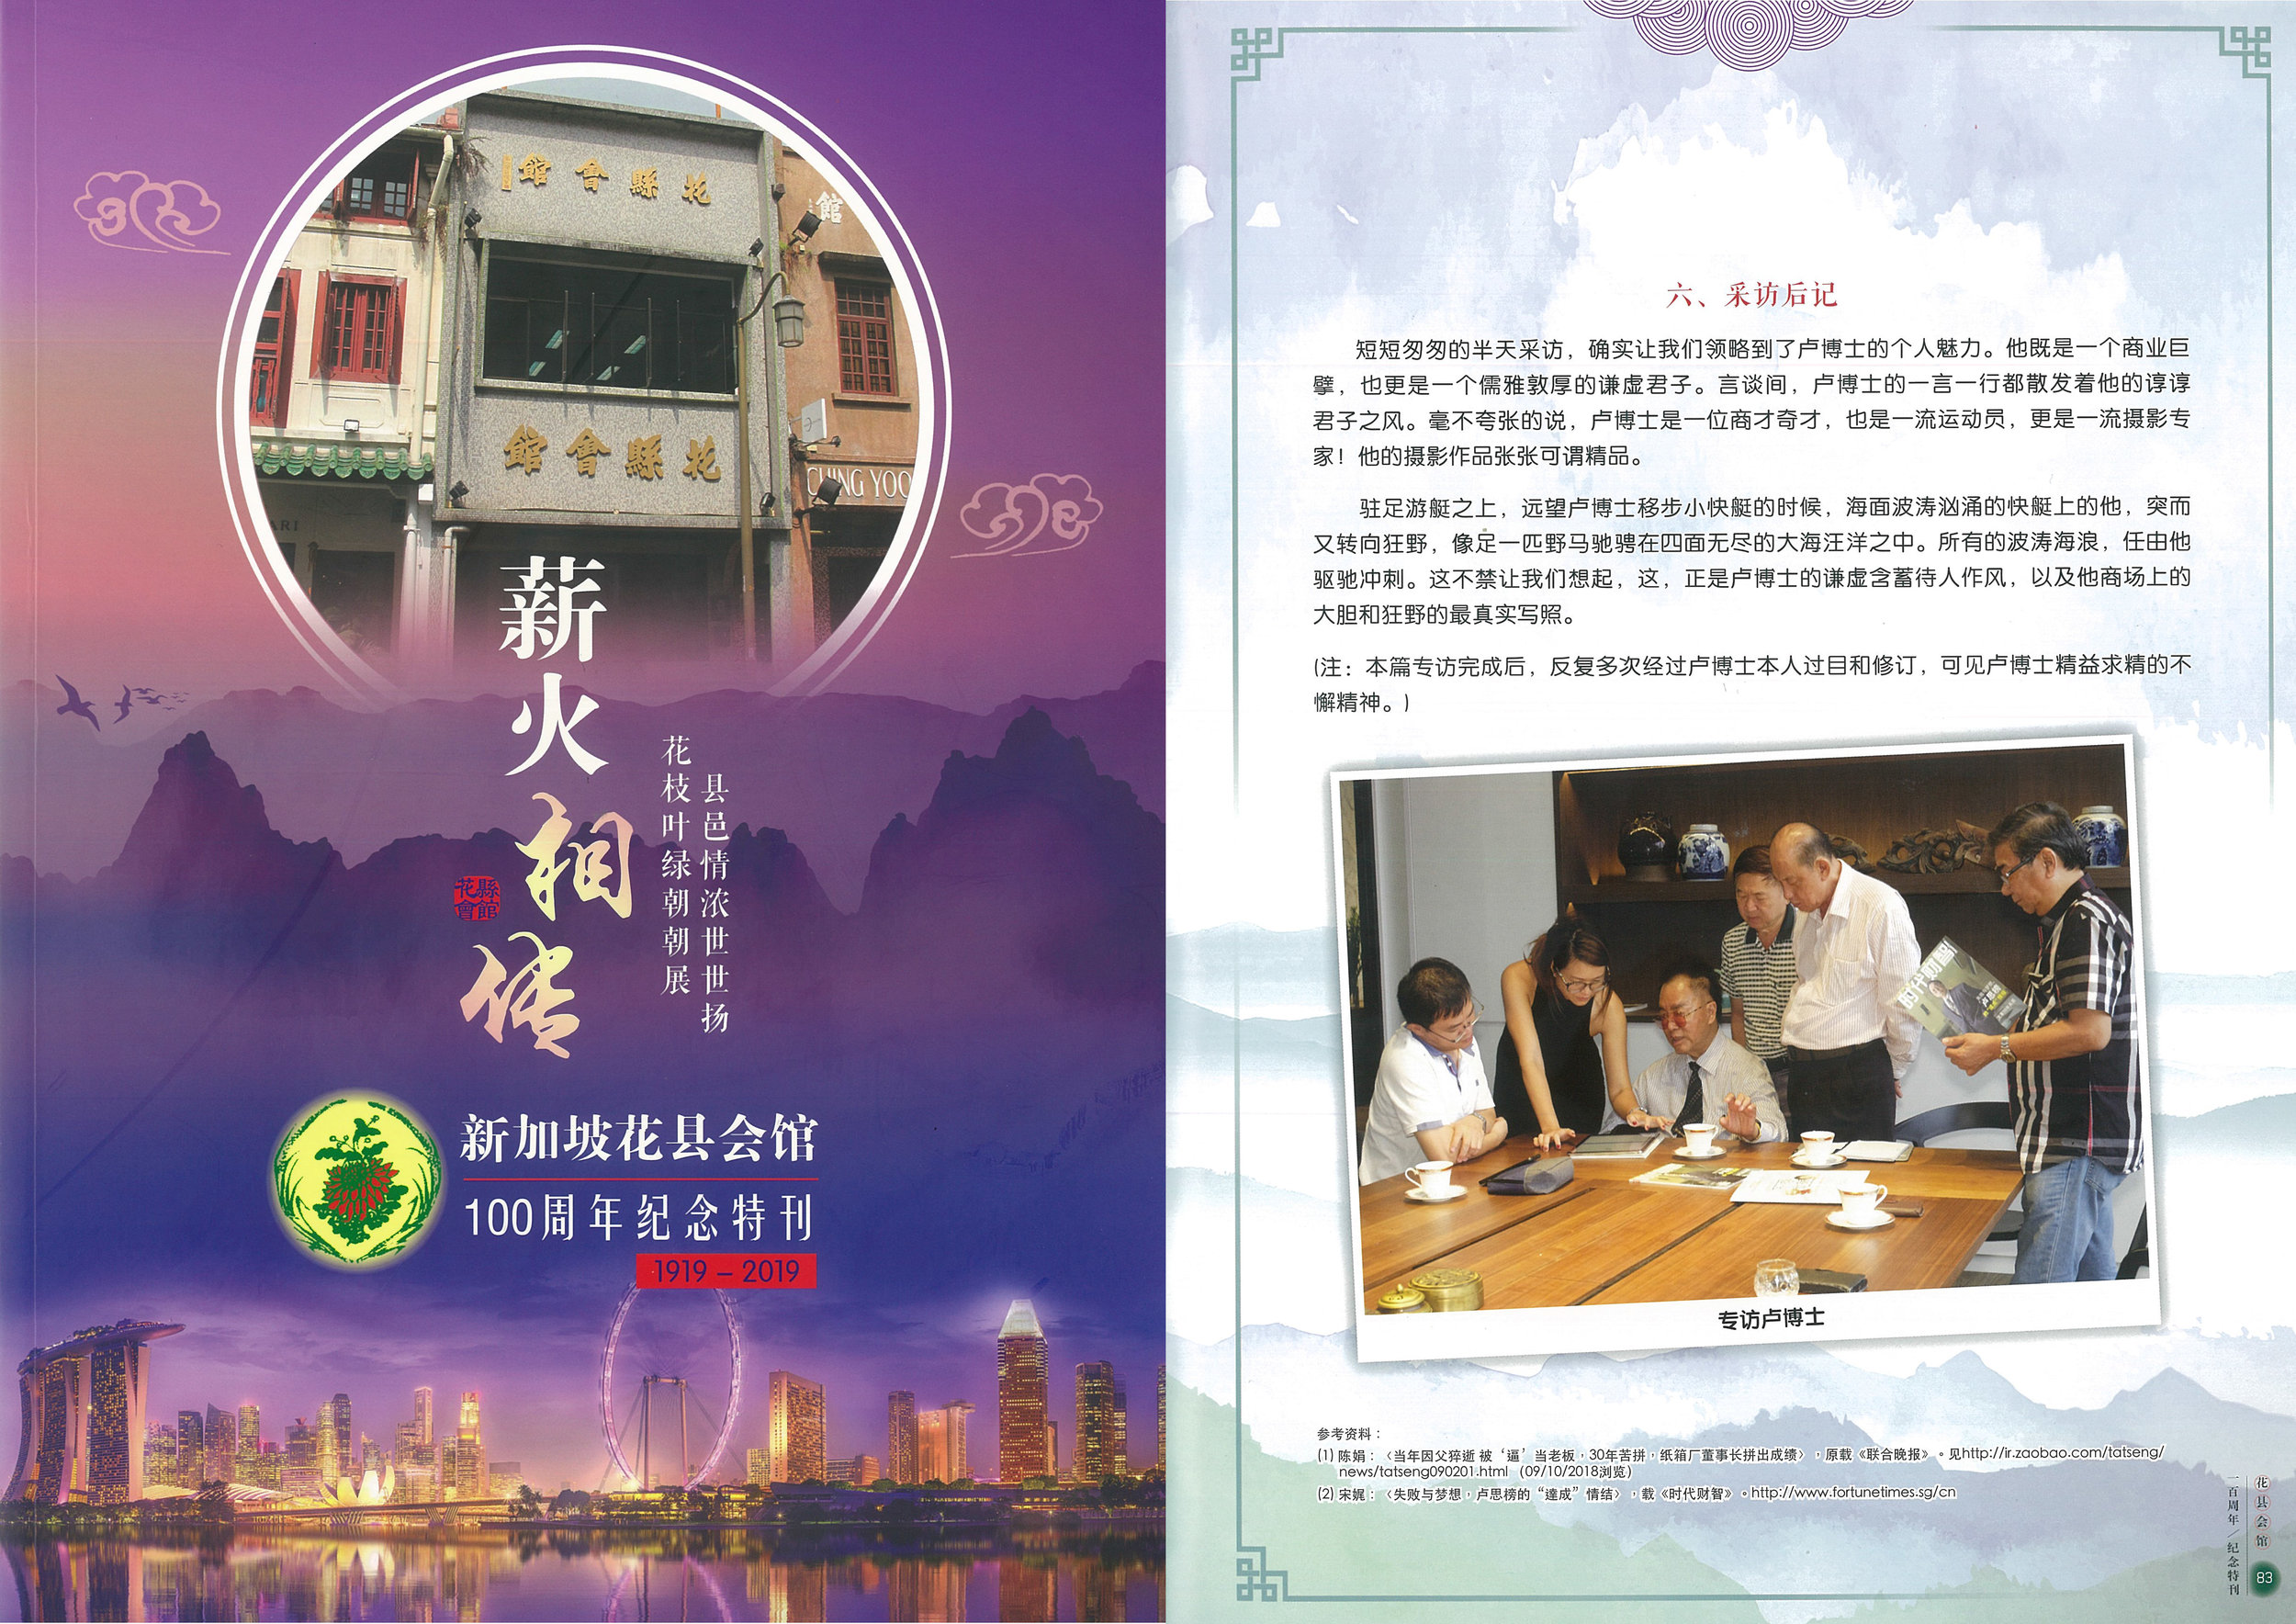 Happy 100th Birthday to  Fa Yun Wui Kwun 花县会馆 ! Our client for One Tat Seng-  Dr Low See Pong  is a member of Fa Yun Wui Kwun since the 1970s. In this 100 anniversary special edition, it showcases Dr Low's inspirational business endeavours and his recently completed seven-storey industrial building 'One Tat Seng'. We are humbled to be part of his life long journey in this completion of  One Tat Seng .